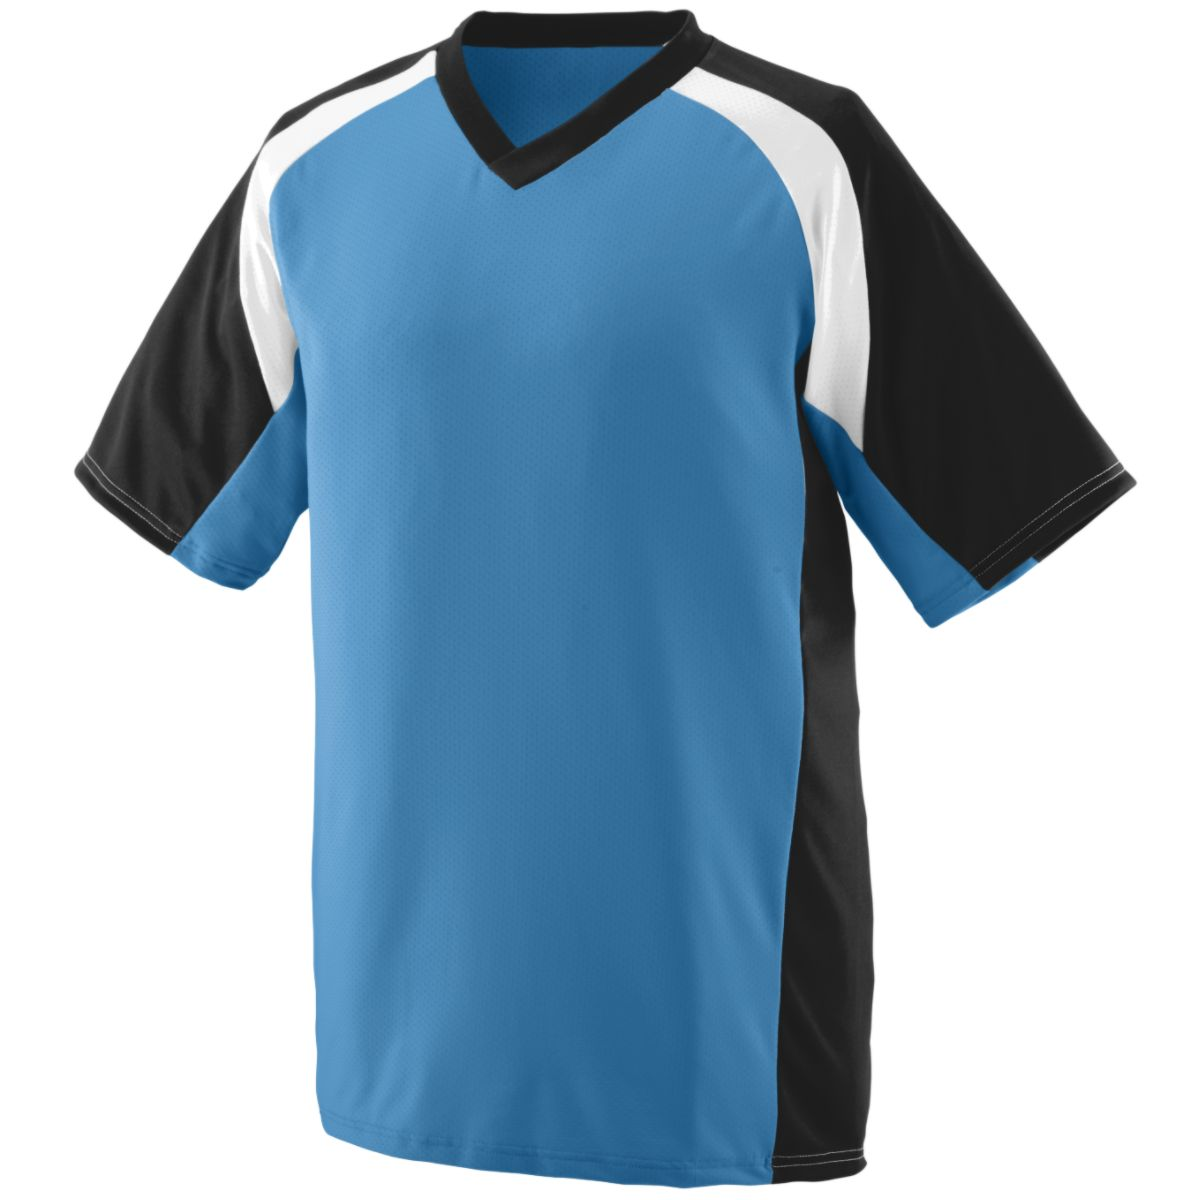 Nitro Jersey - Youth COLUMBIA BLUE/BLACK/WHITE L